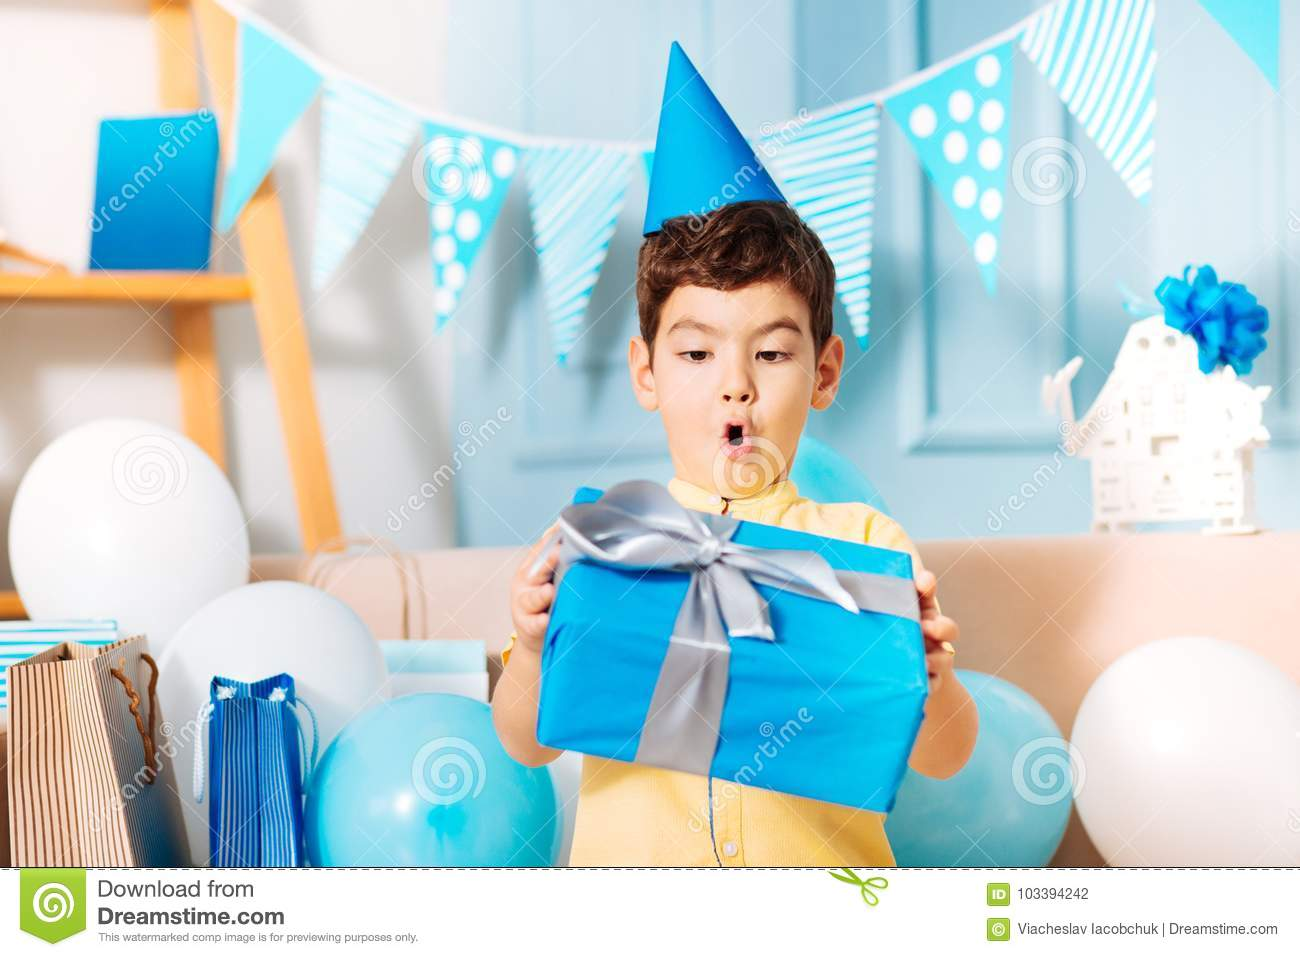 little-boy-looking-his-birthday-gift-surprise-incredible-adorable-holding-blue-box-present-sur...jpg